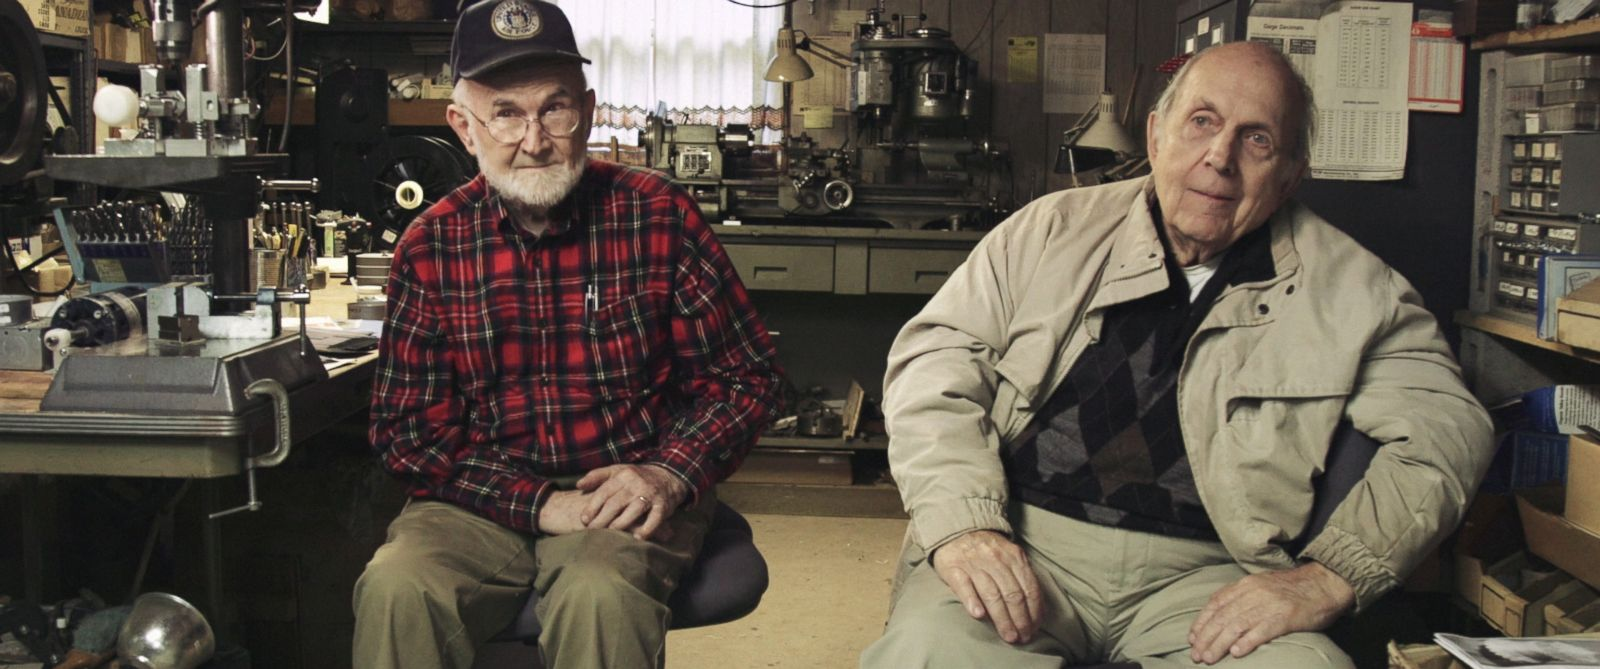 PHOTO:Robert Nepper and Bill Stevenson sit in their basement workshop in St. Paul, MN.